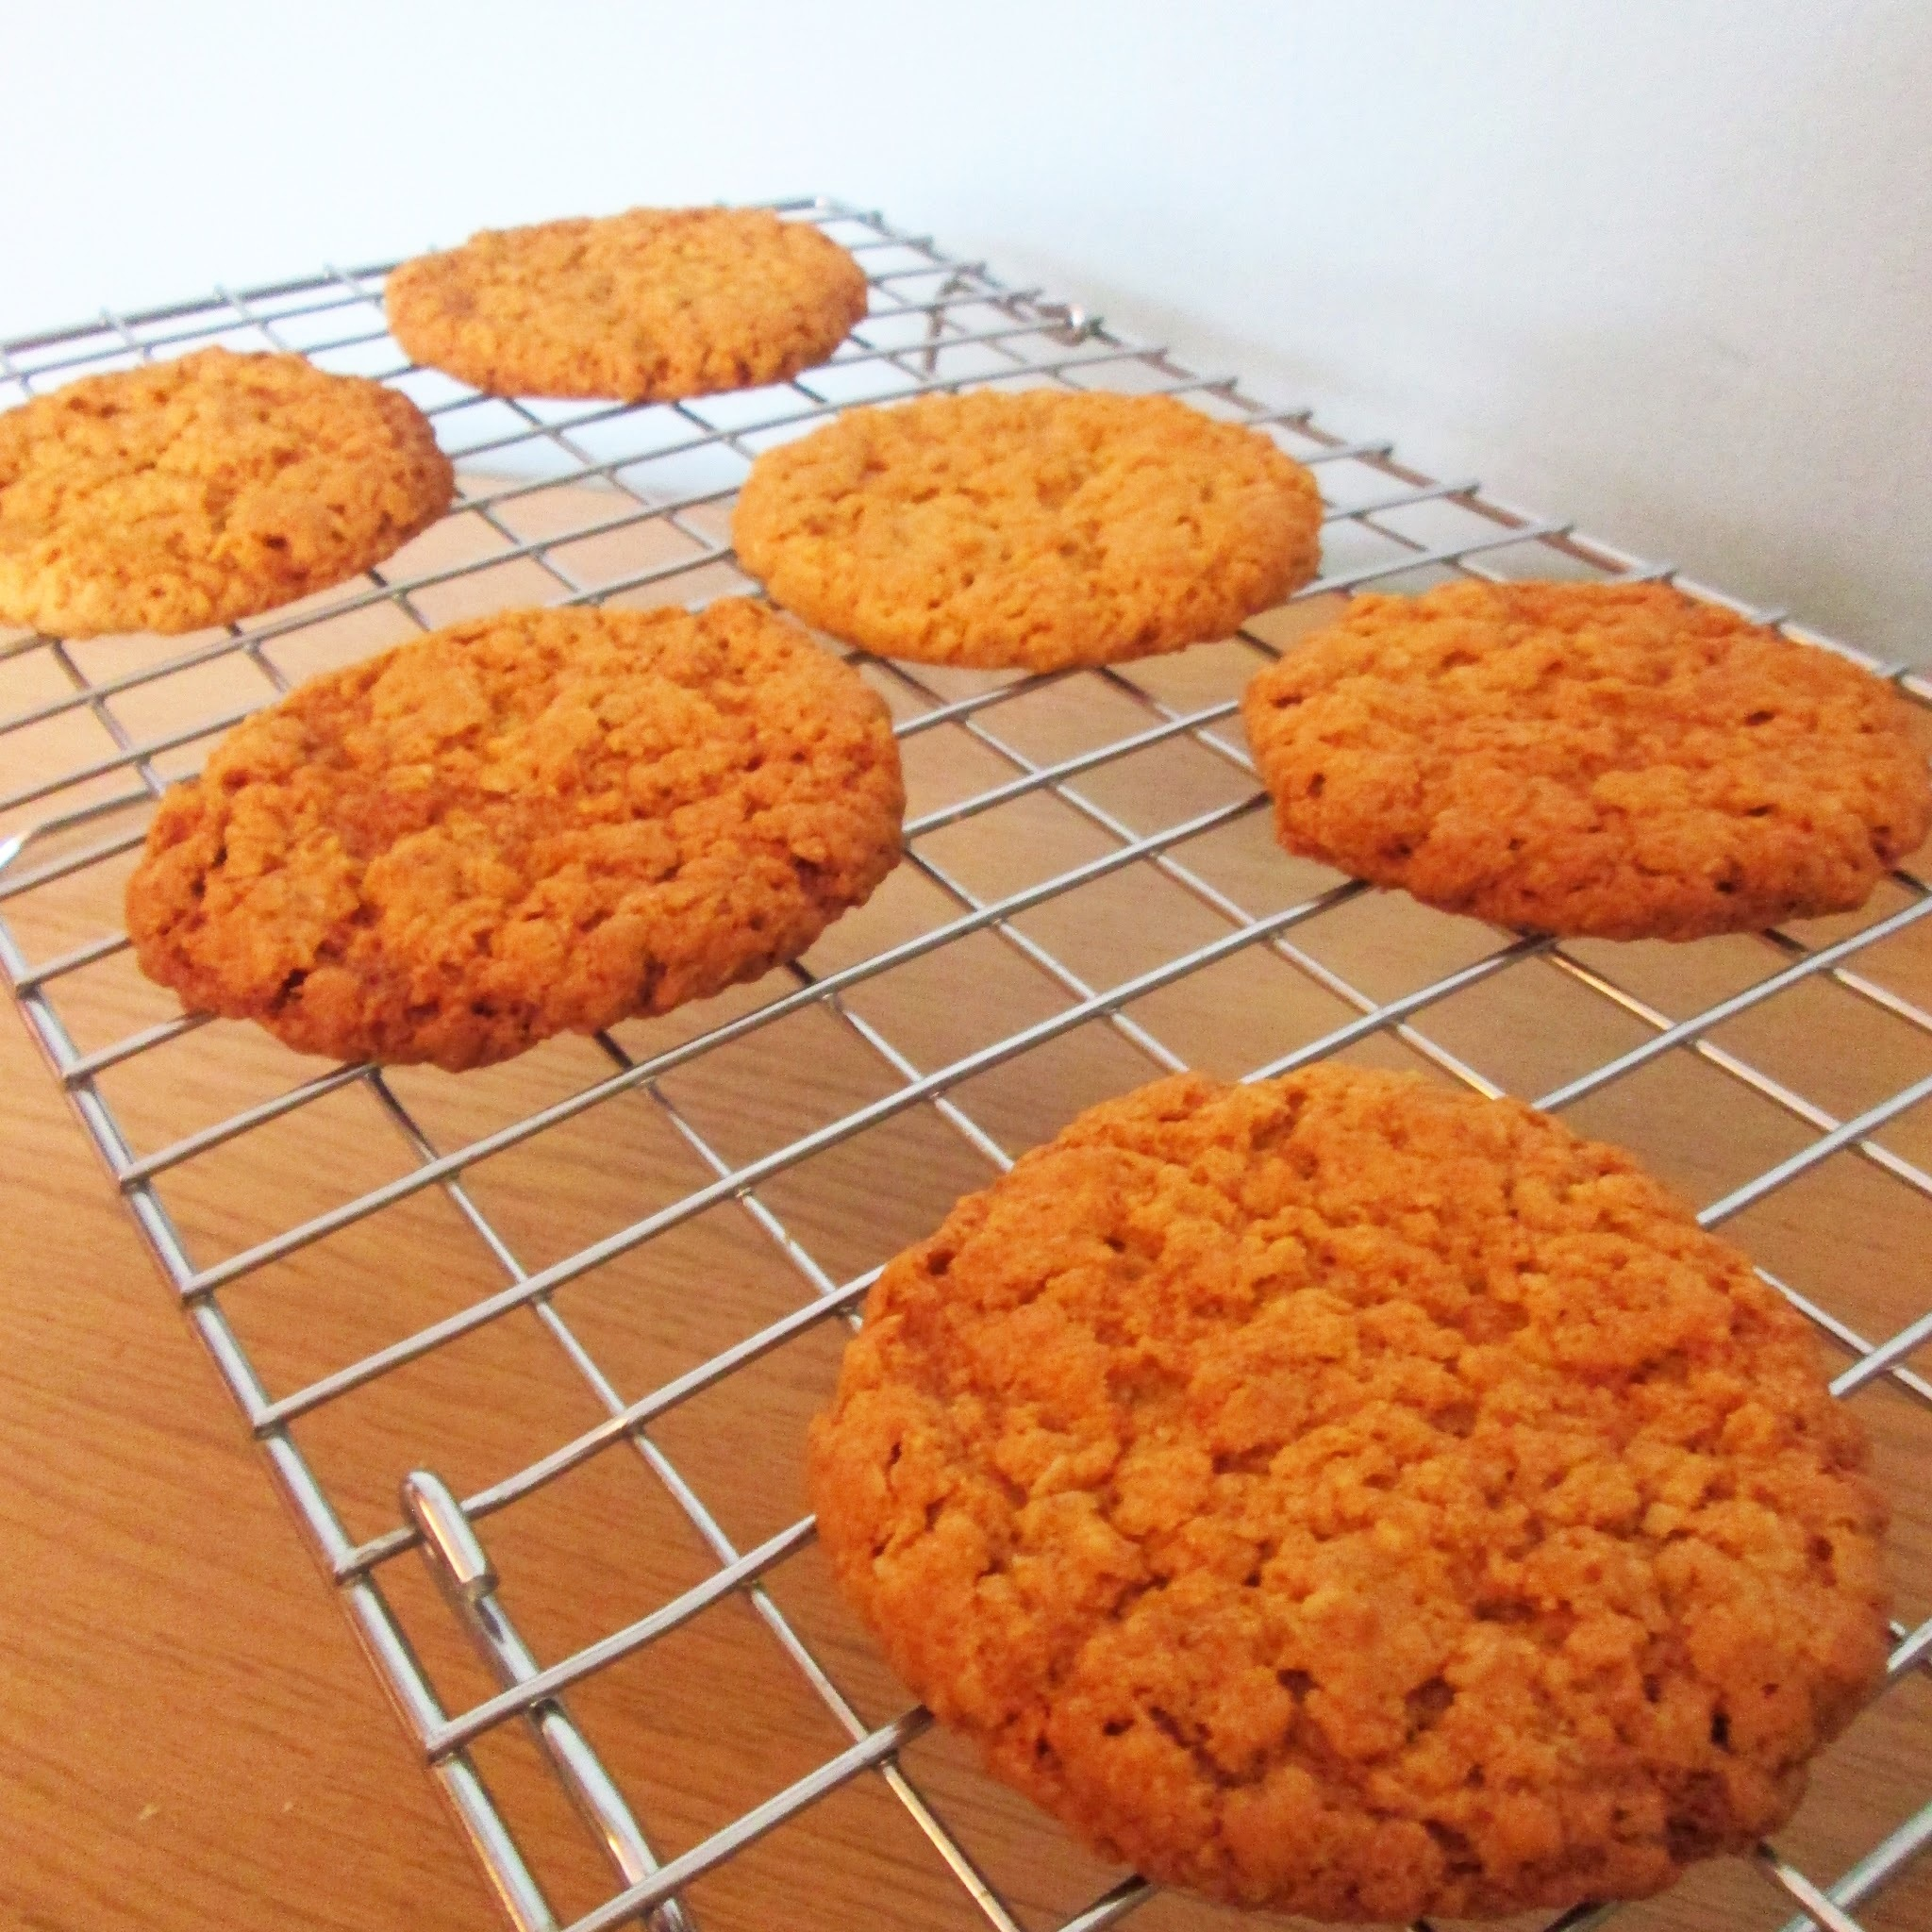 Oaty cookies (Hobnobs)